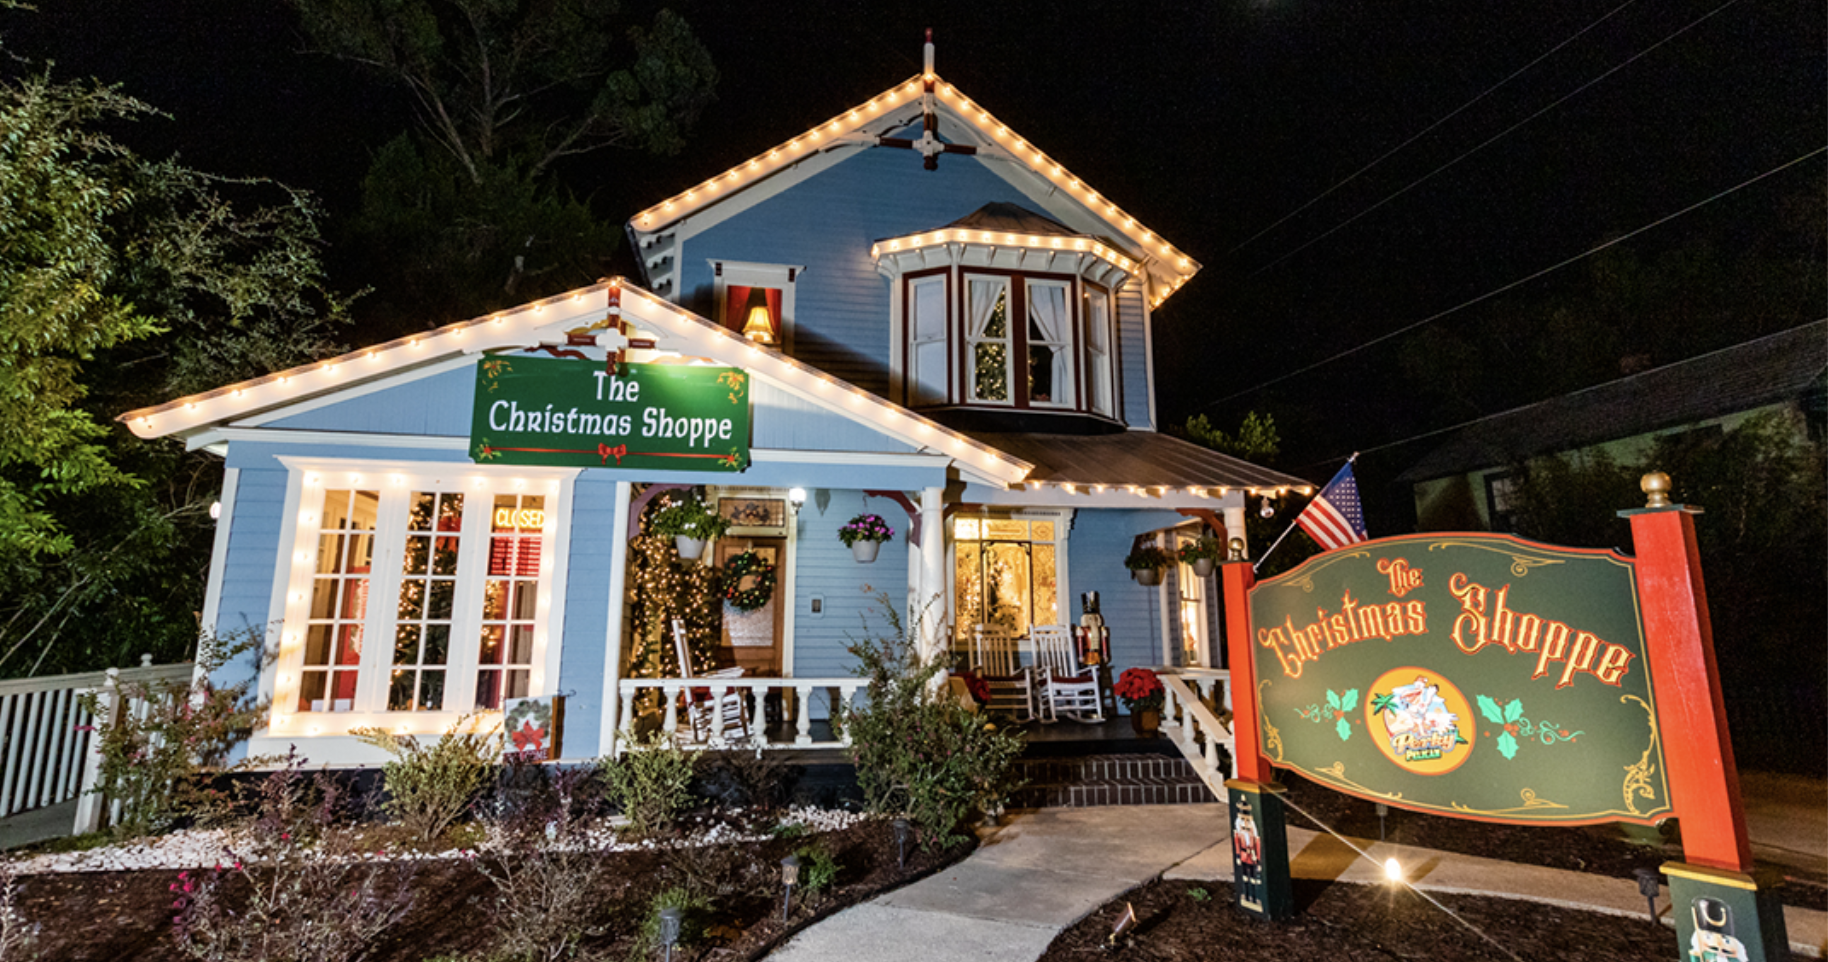 THE HOLIDAYS ARE IN FULL SWING AT THE CHRISTMAS SHOPPE